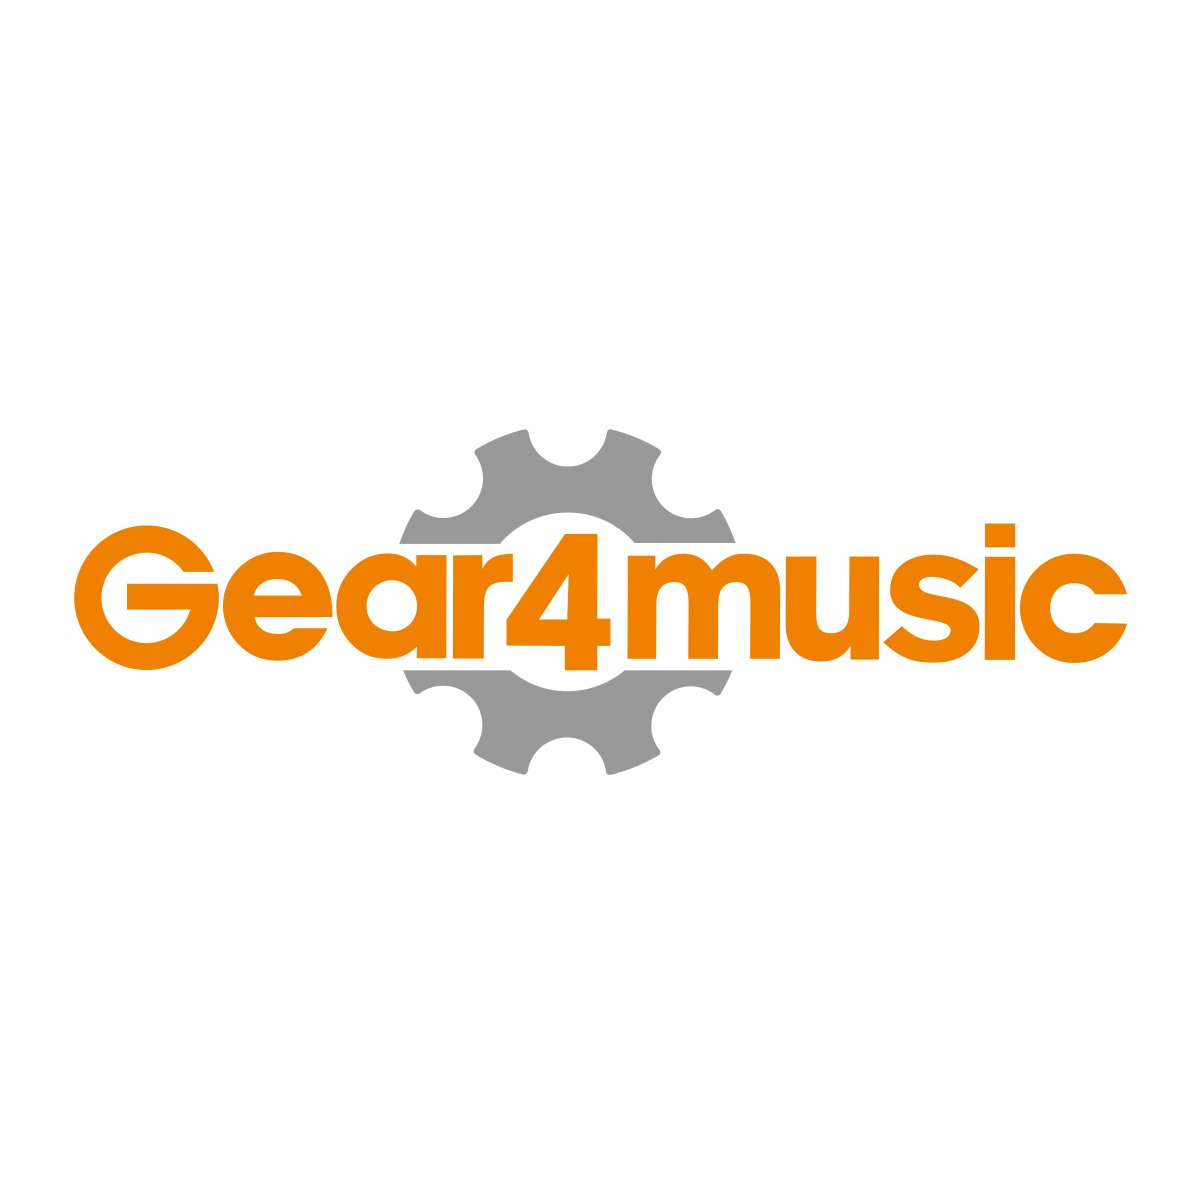 Carillón de Gear4music